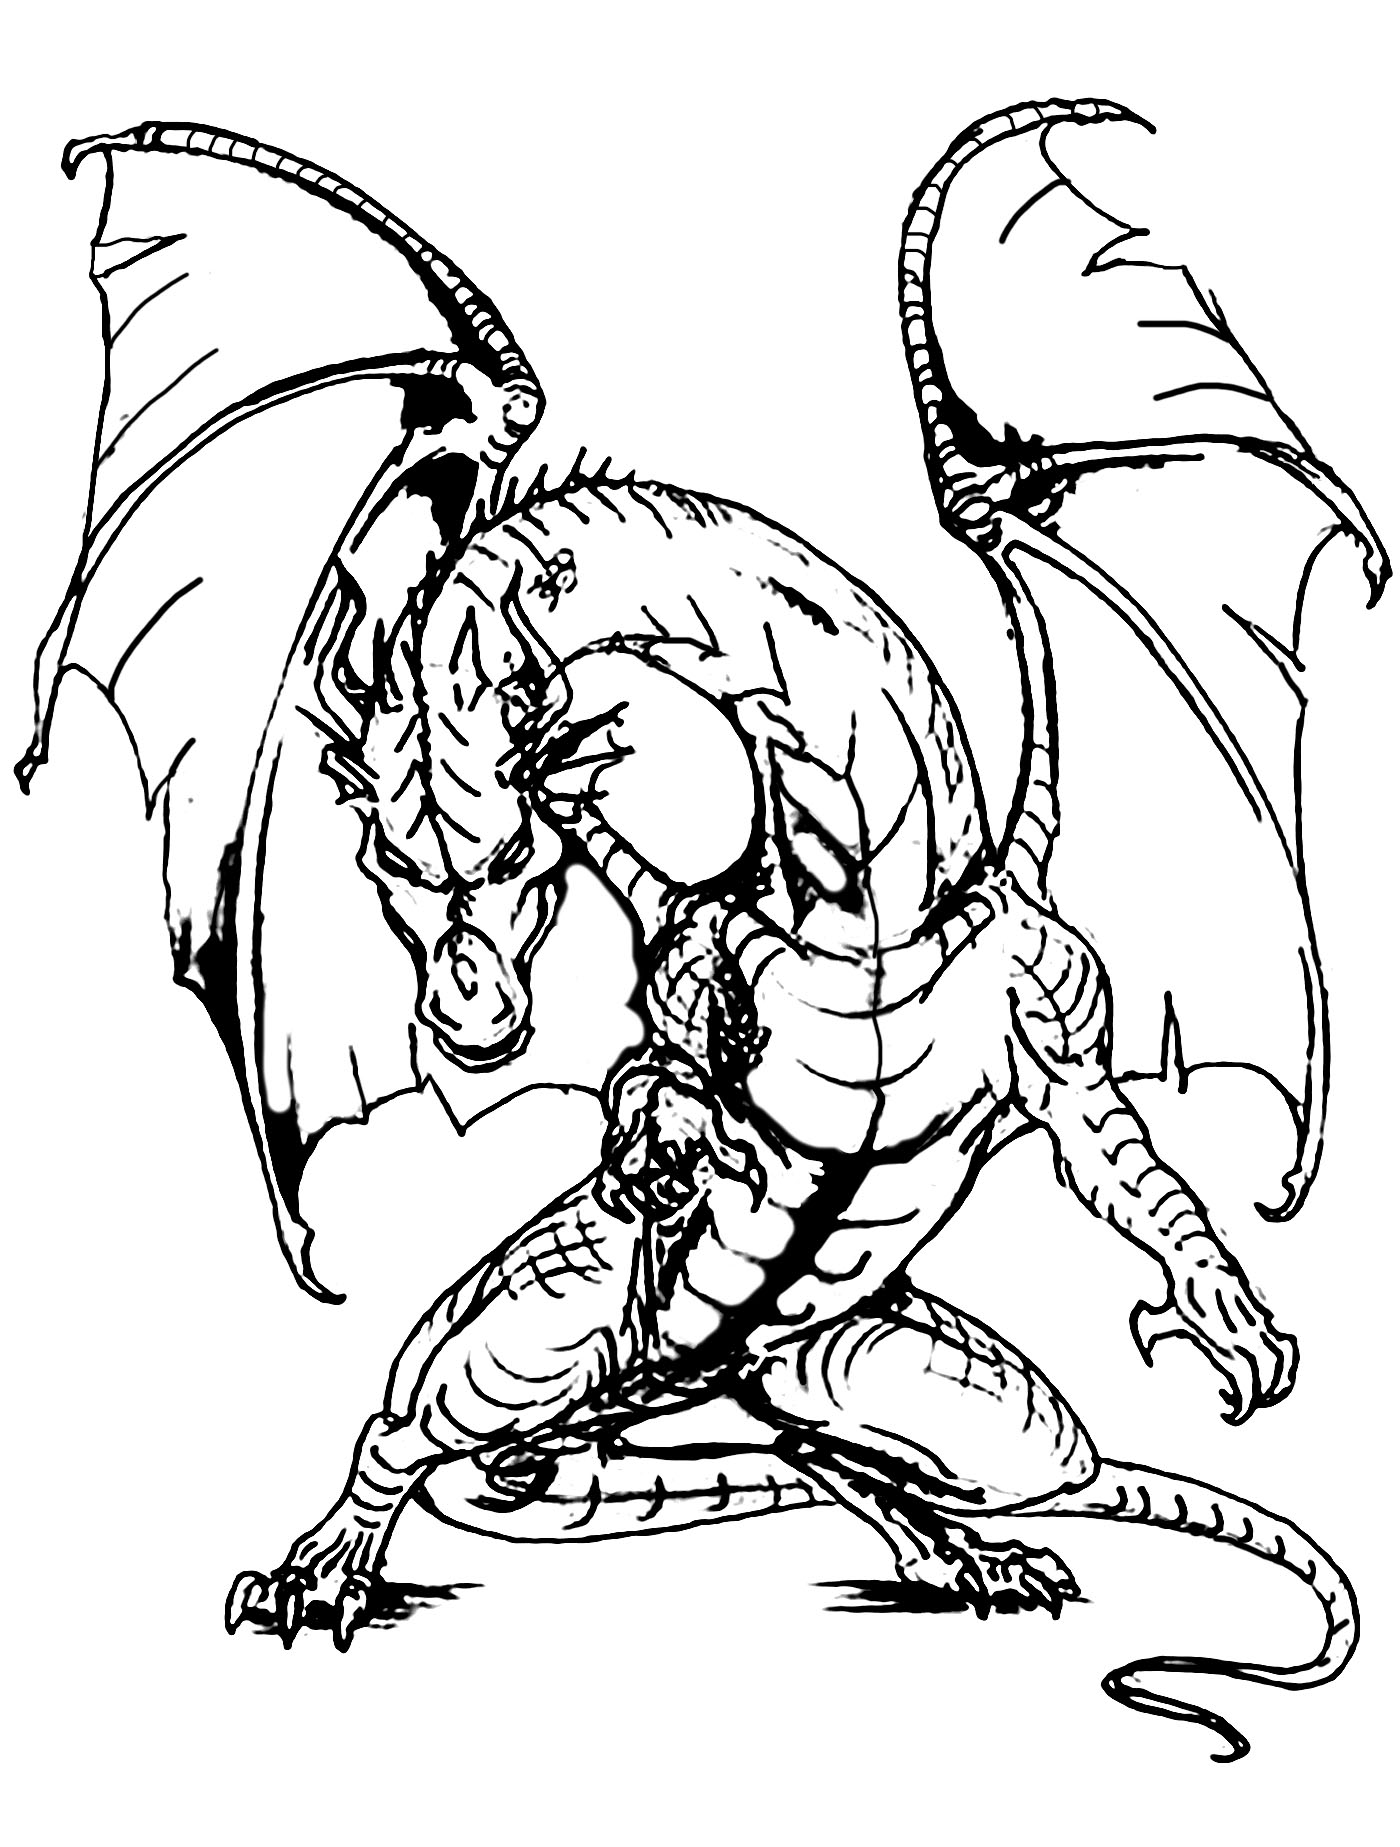 dragon to color printable dragon coloring pages for kids cool2bkids dragon color to